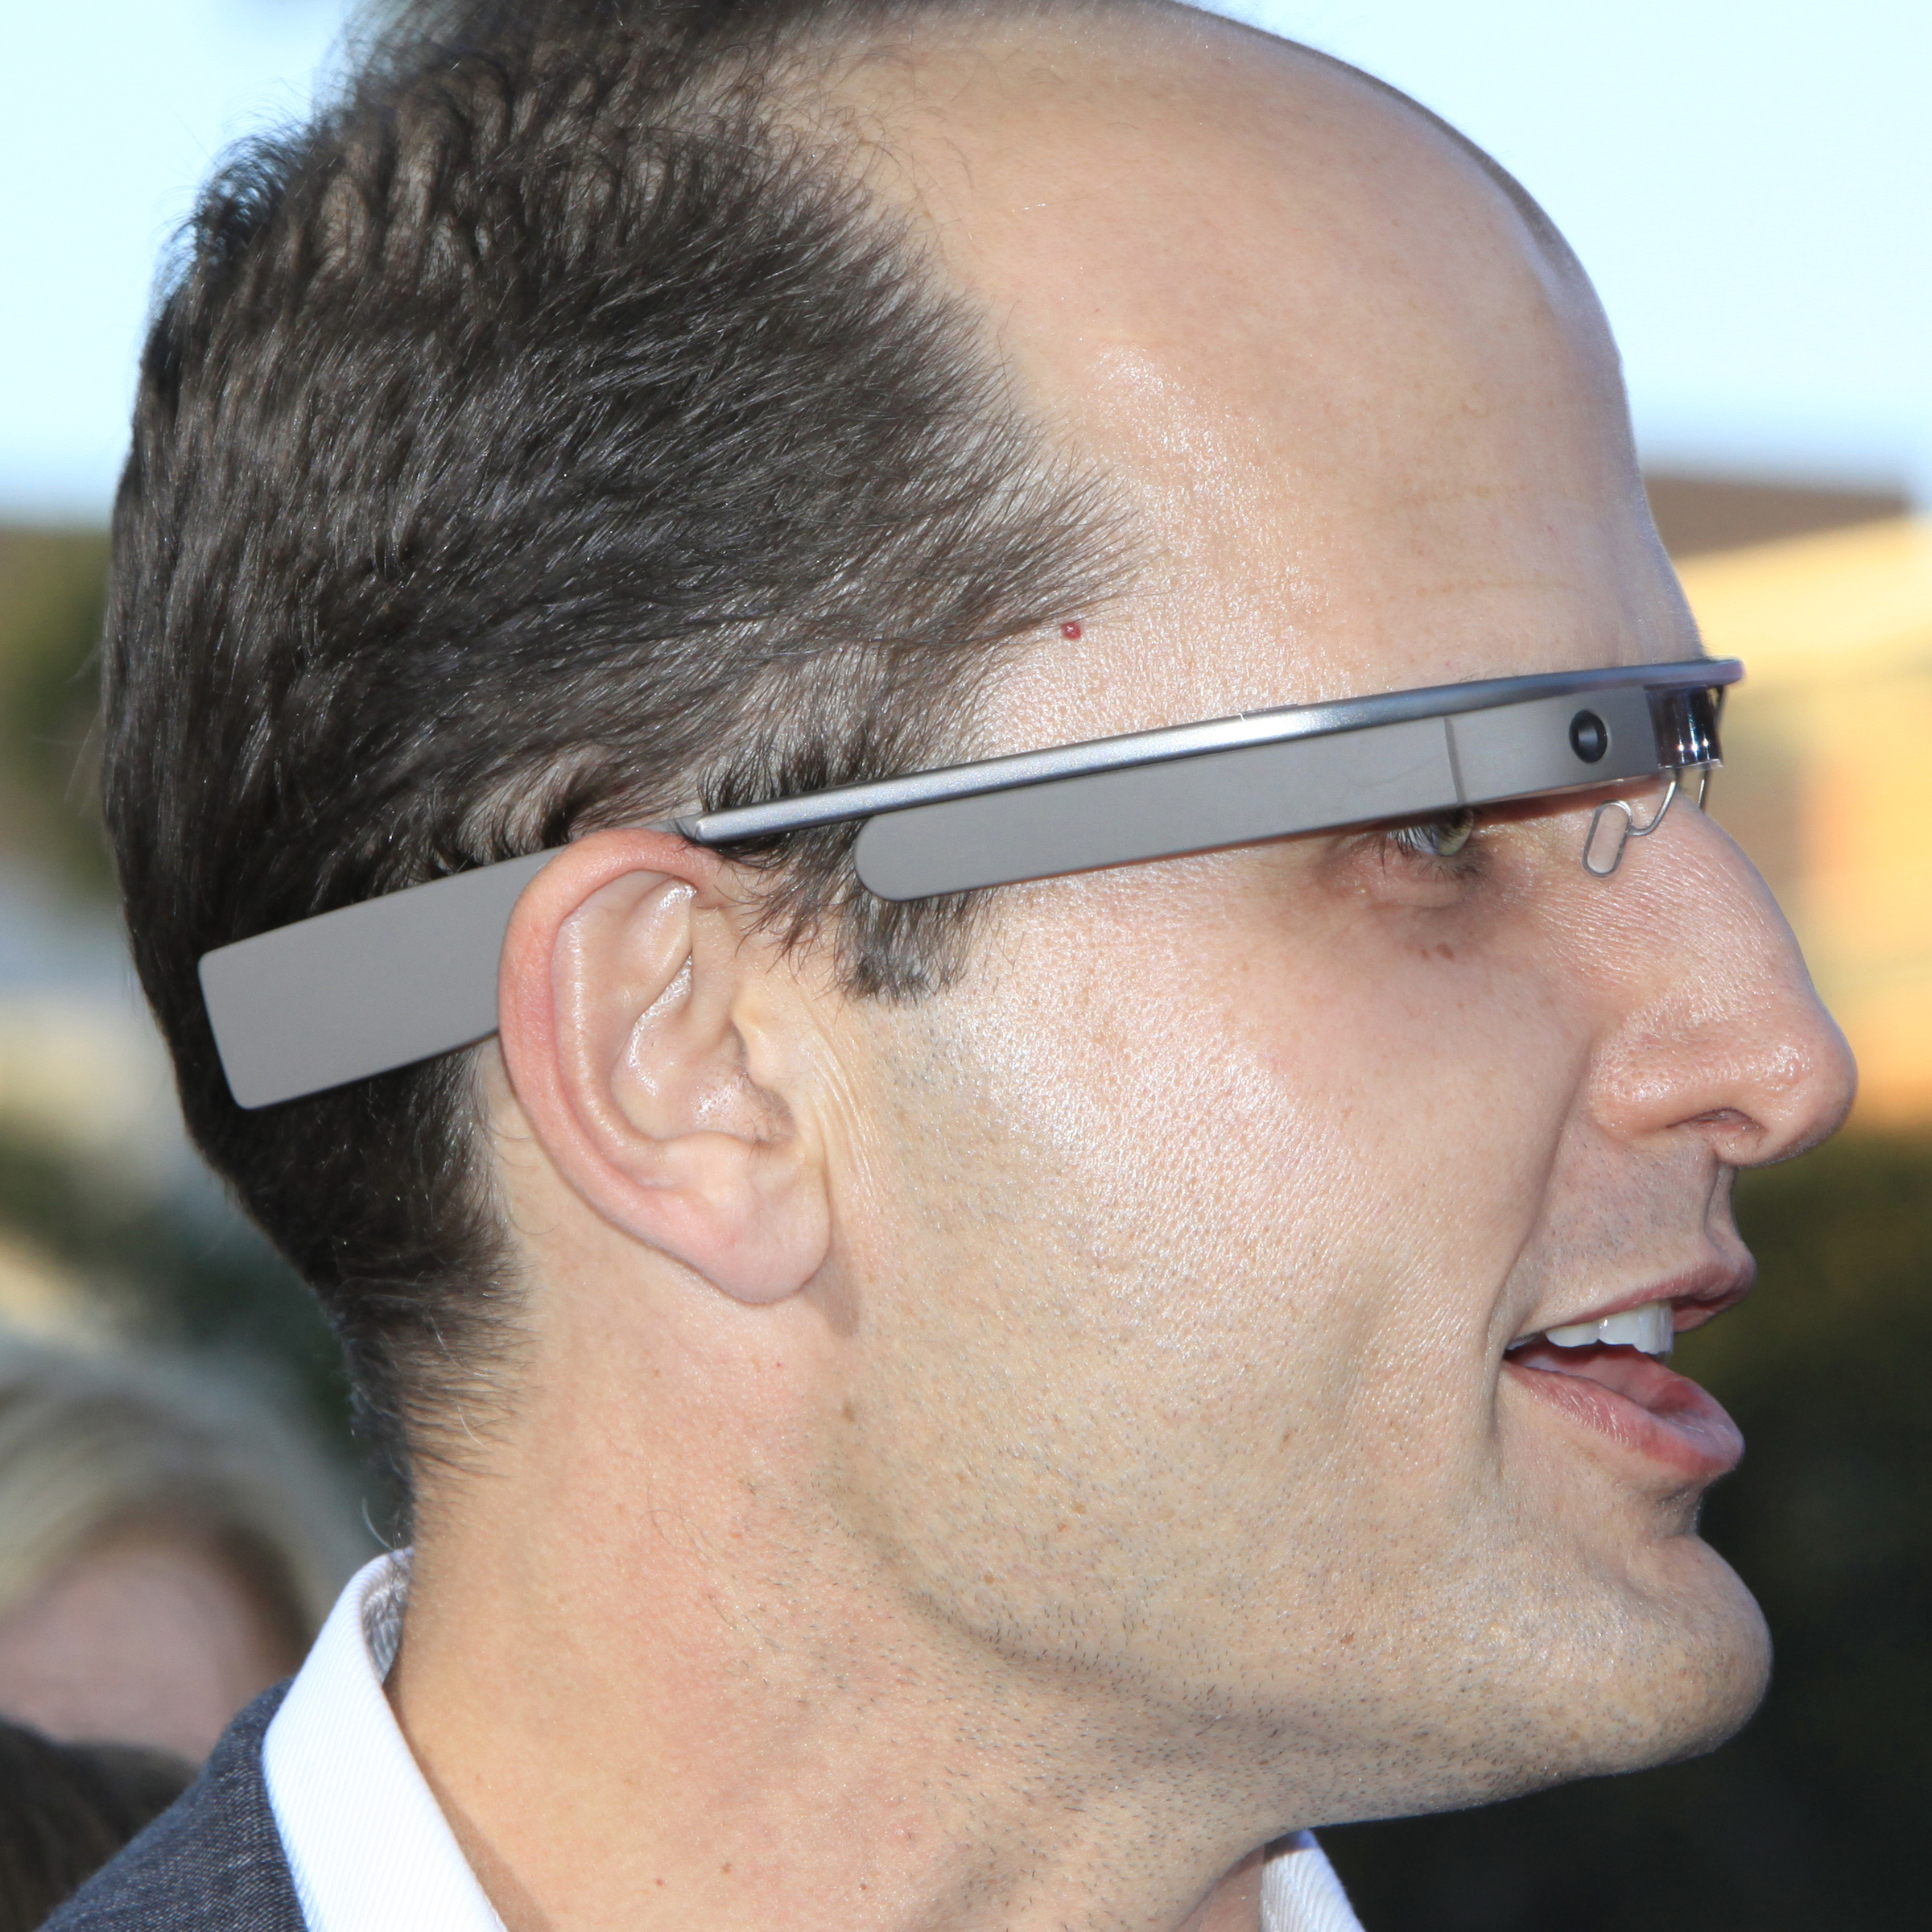 google glasses man square.jpg